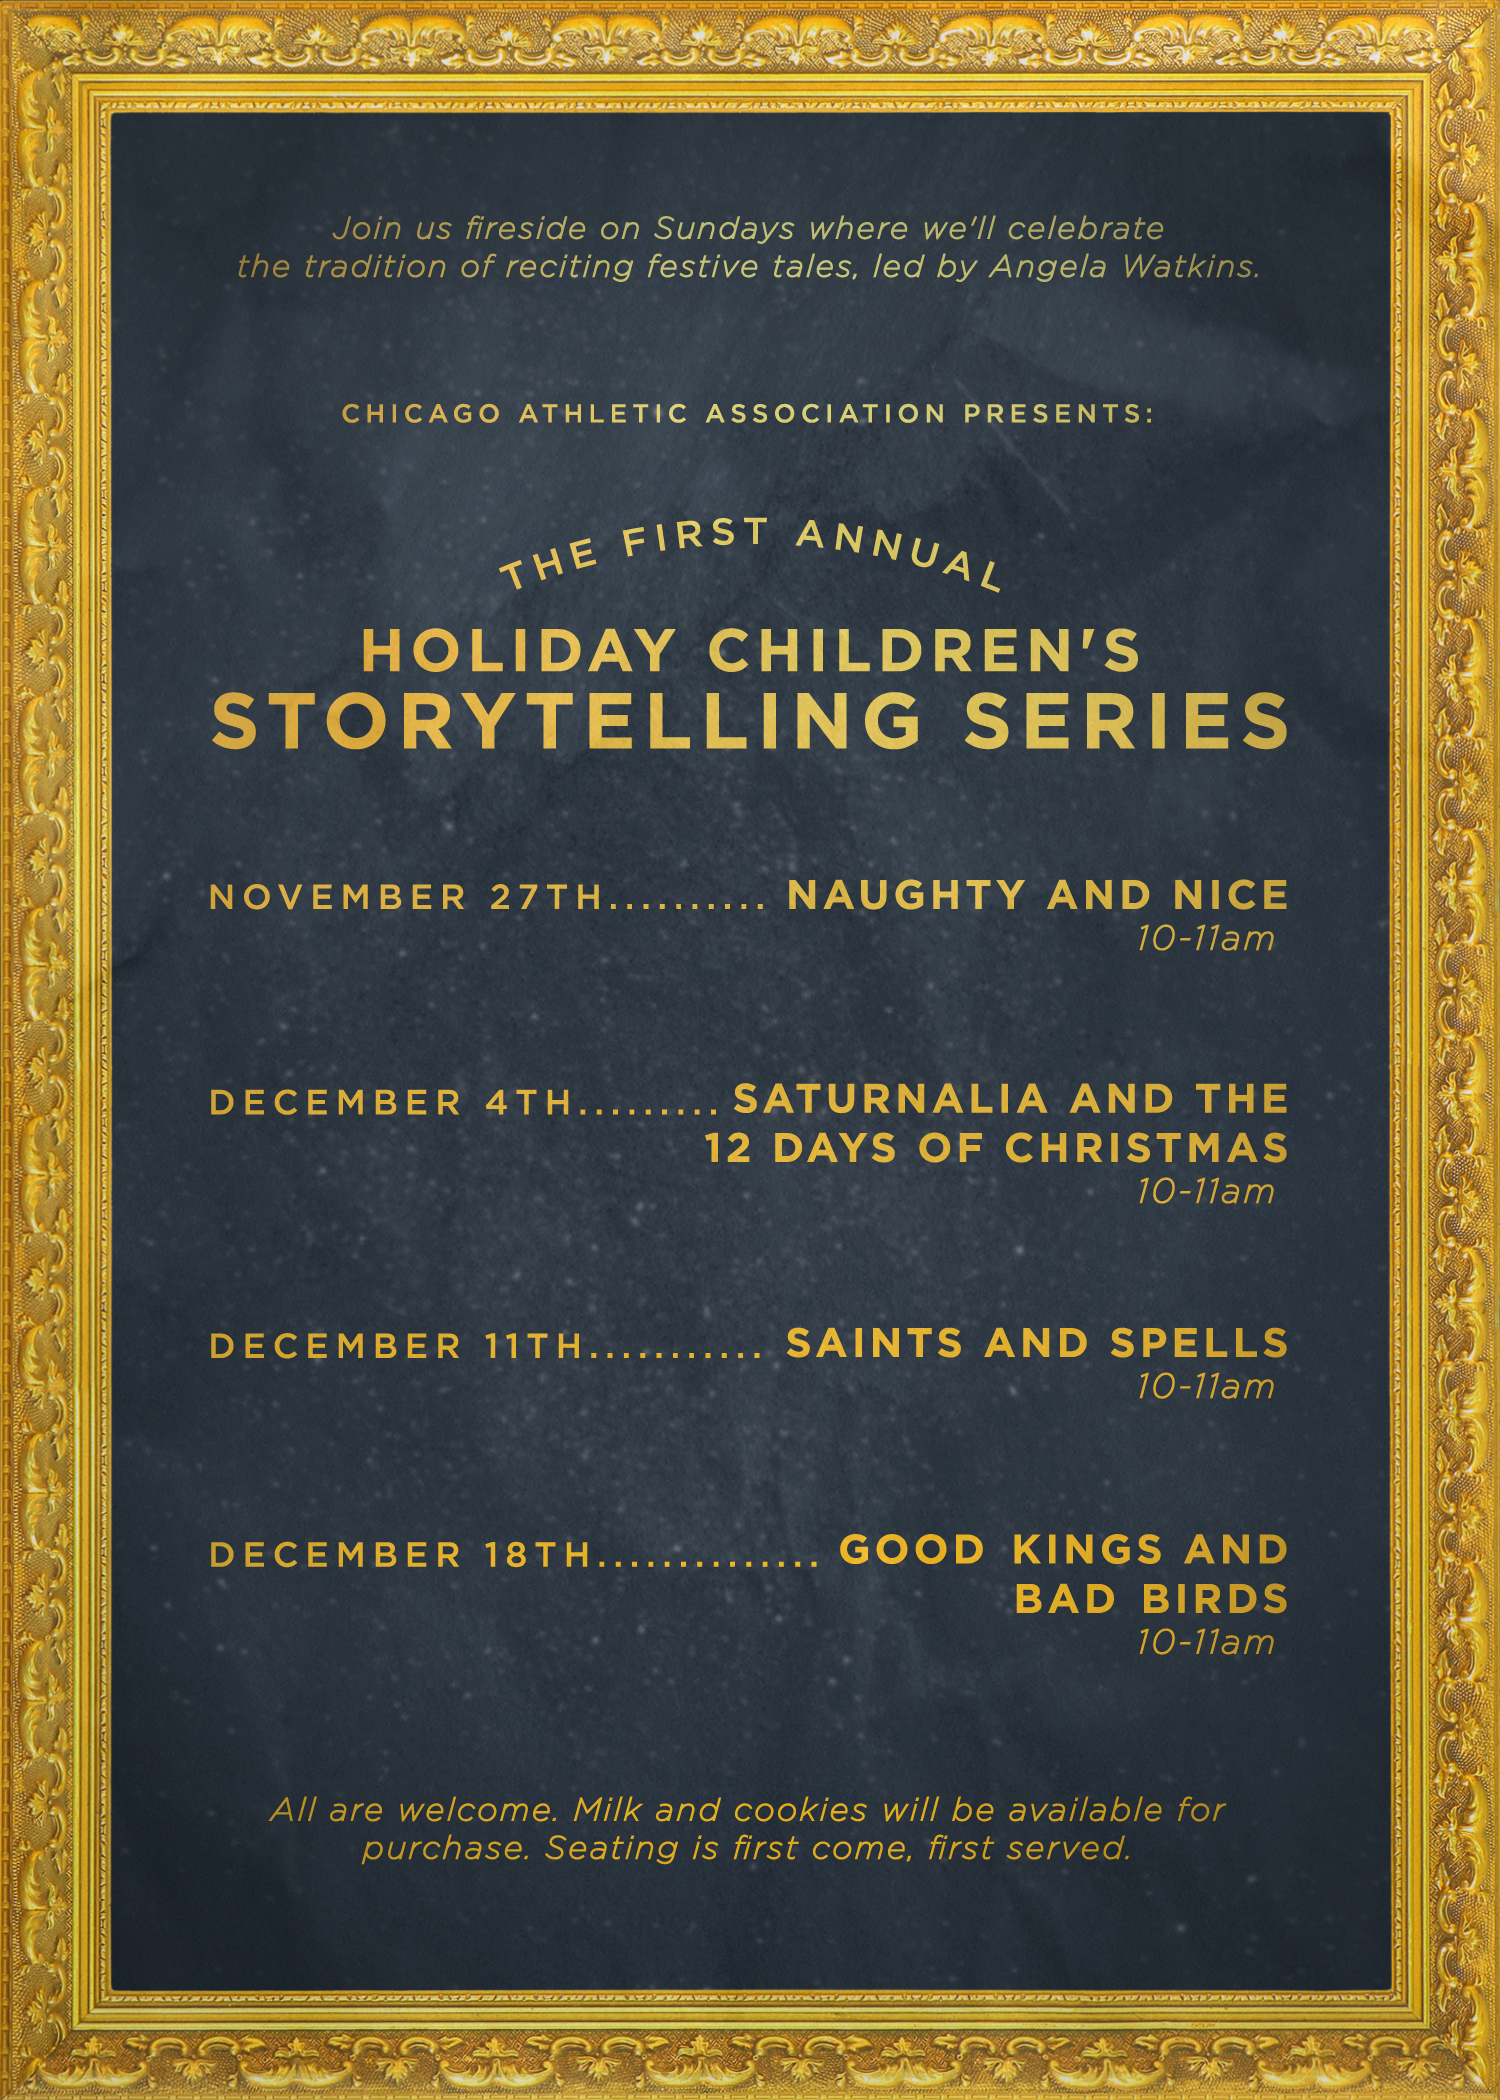 Children's Holiday Storytelling: Saints and Spells | Chicago